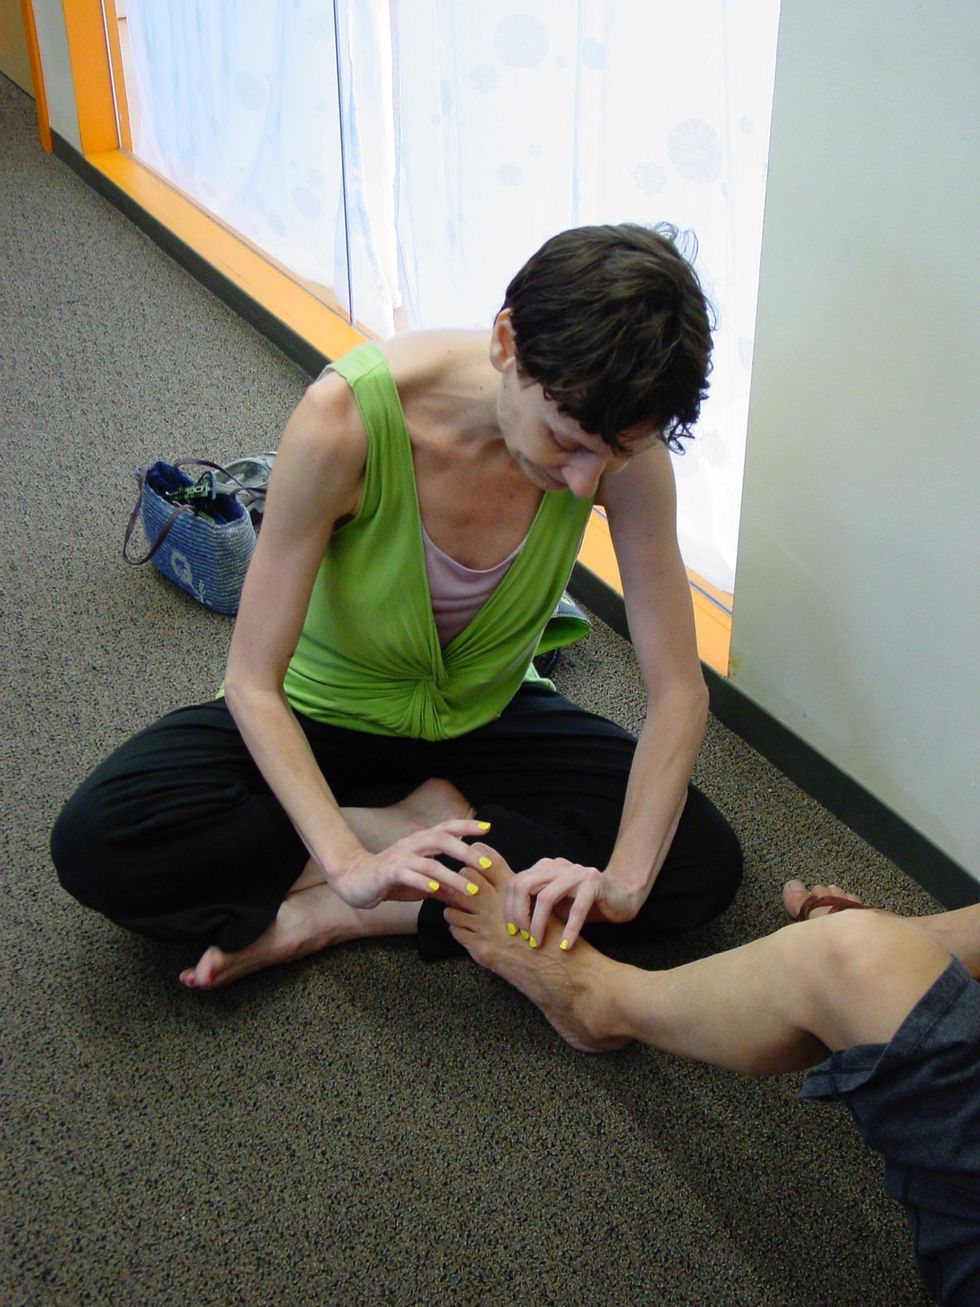 Accardi, wearing black pants and a bright green shirt, sits crosslegged on the floor, with another person's foot in her lap, which she holds gently